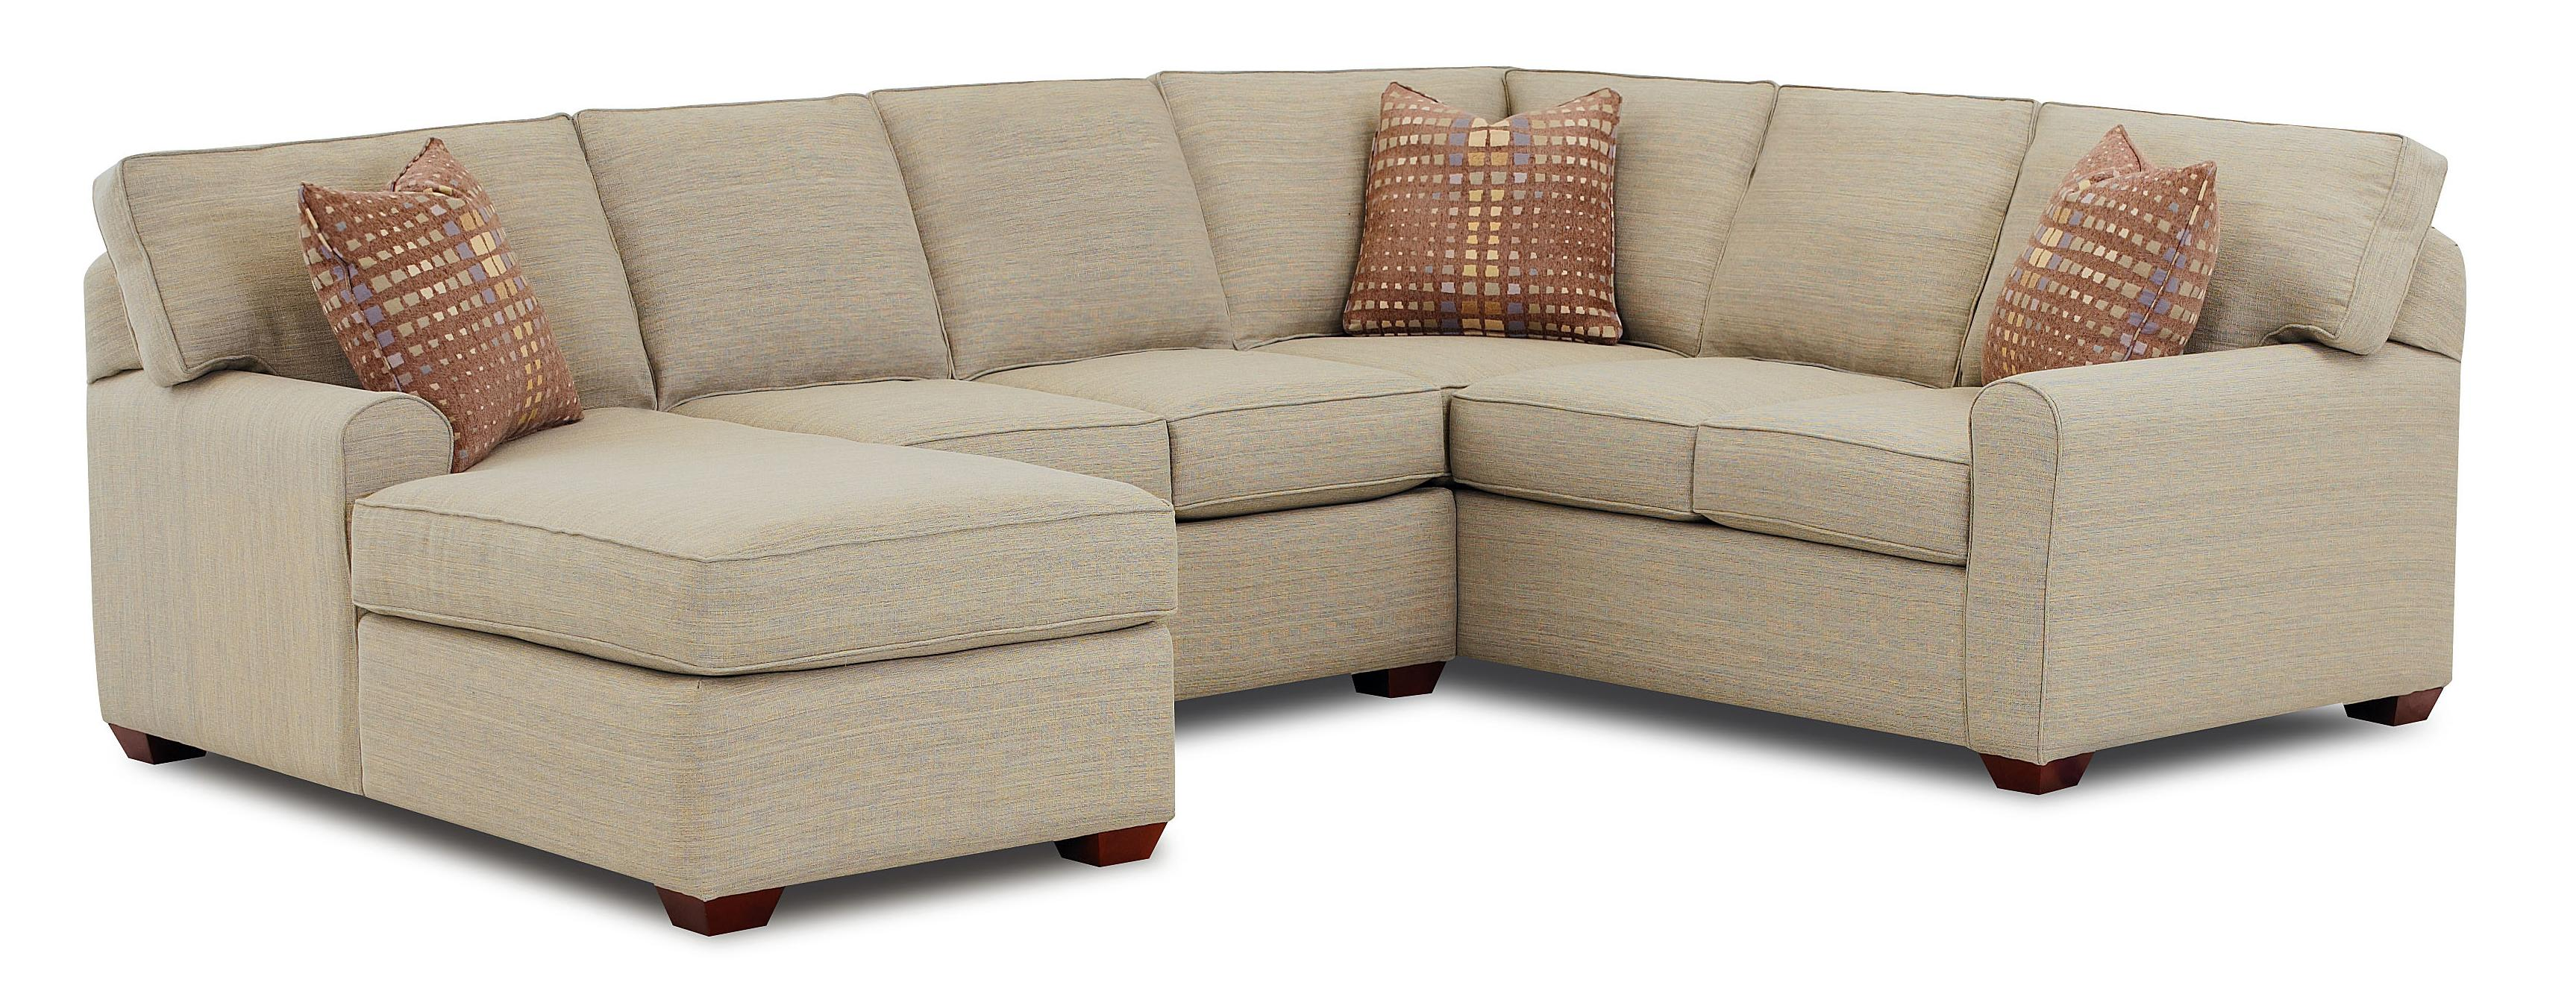 Hybrid Sectional Sofa by Klaussner at Johnny Janosik